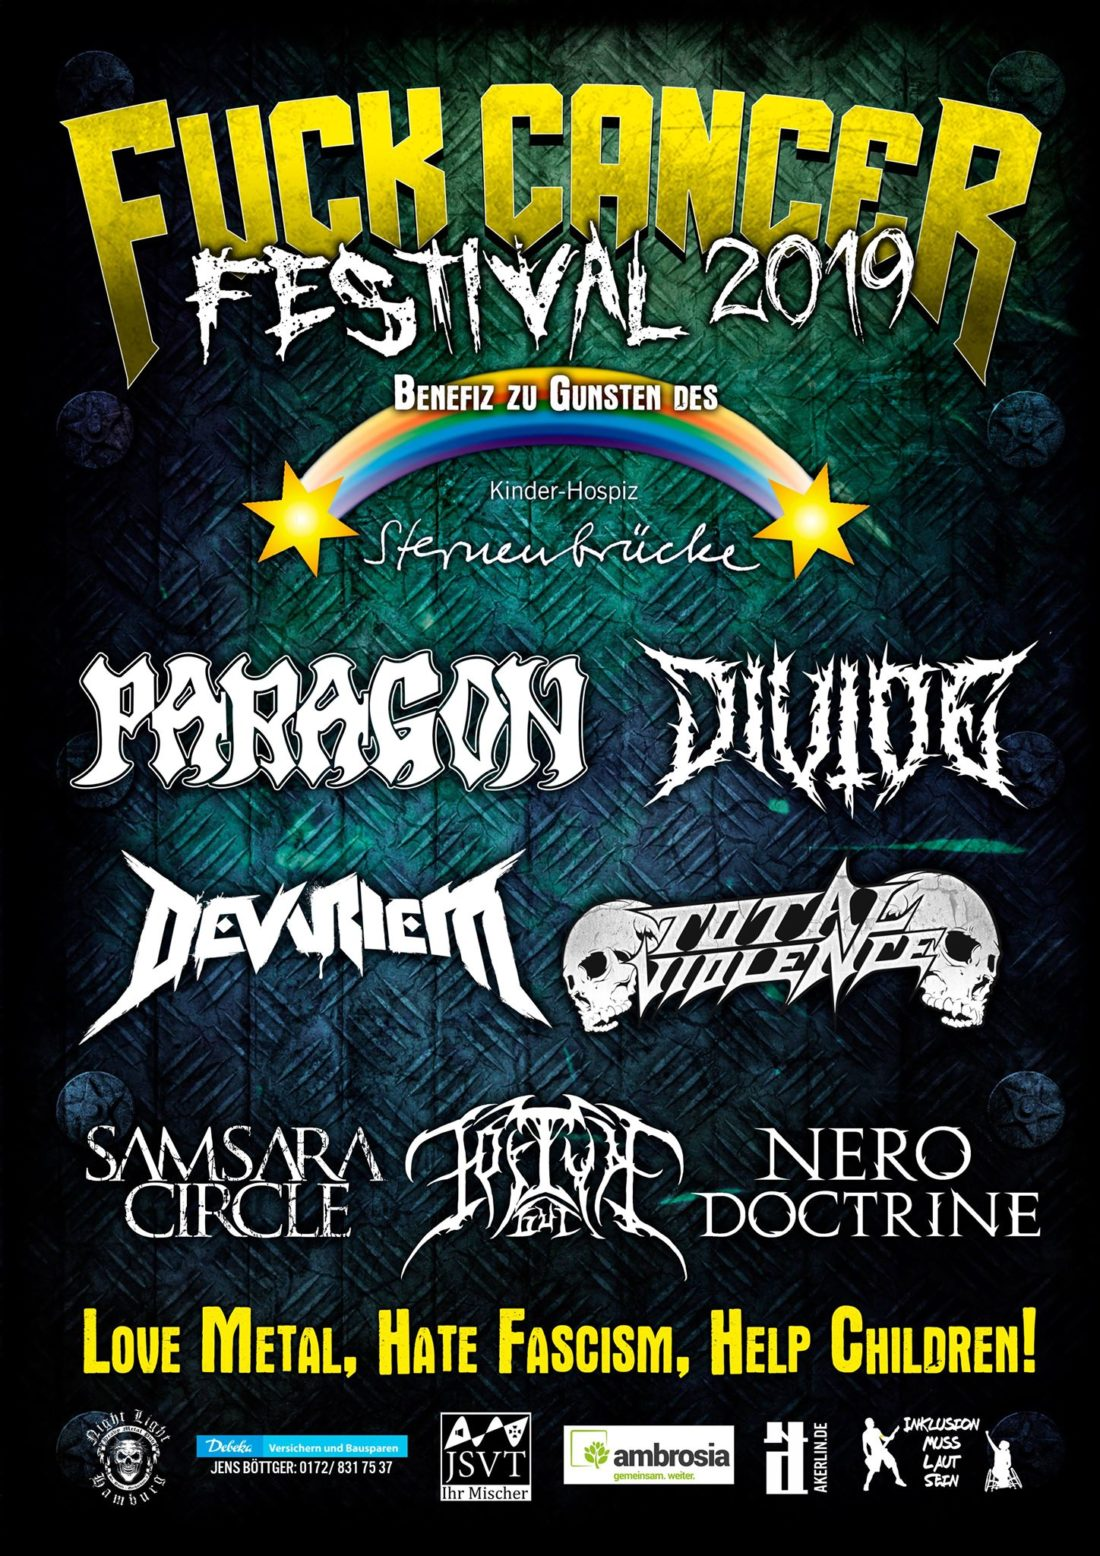 Fuck Cancer Festival 2019